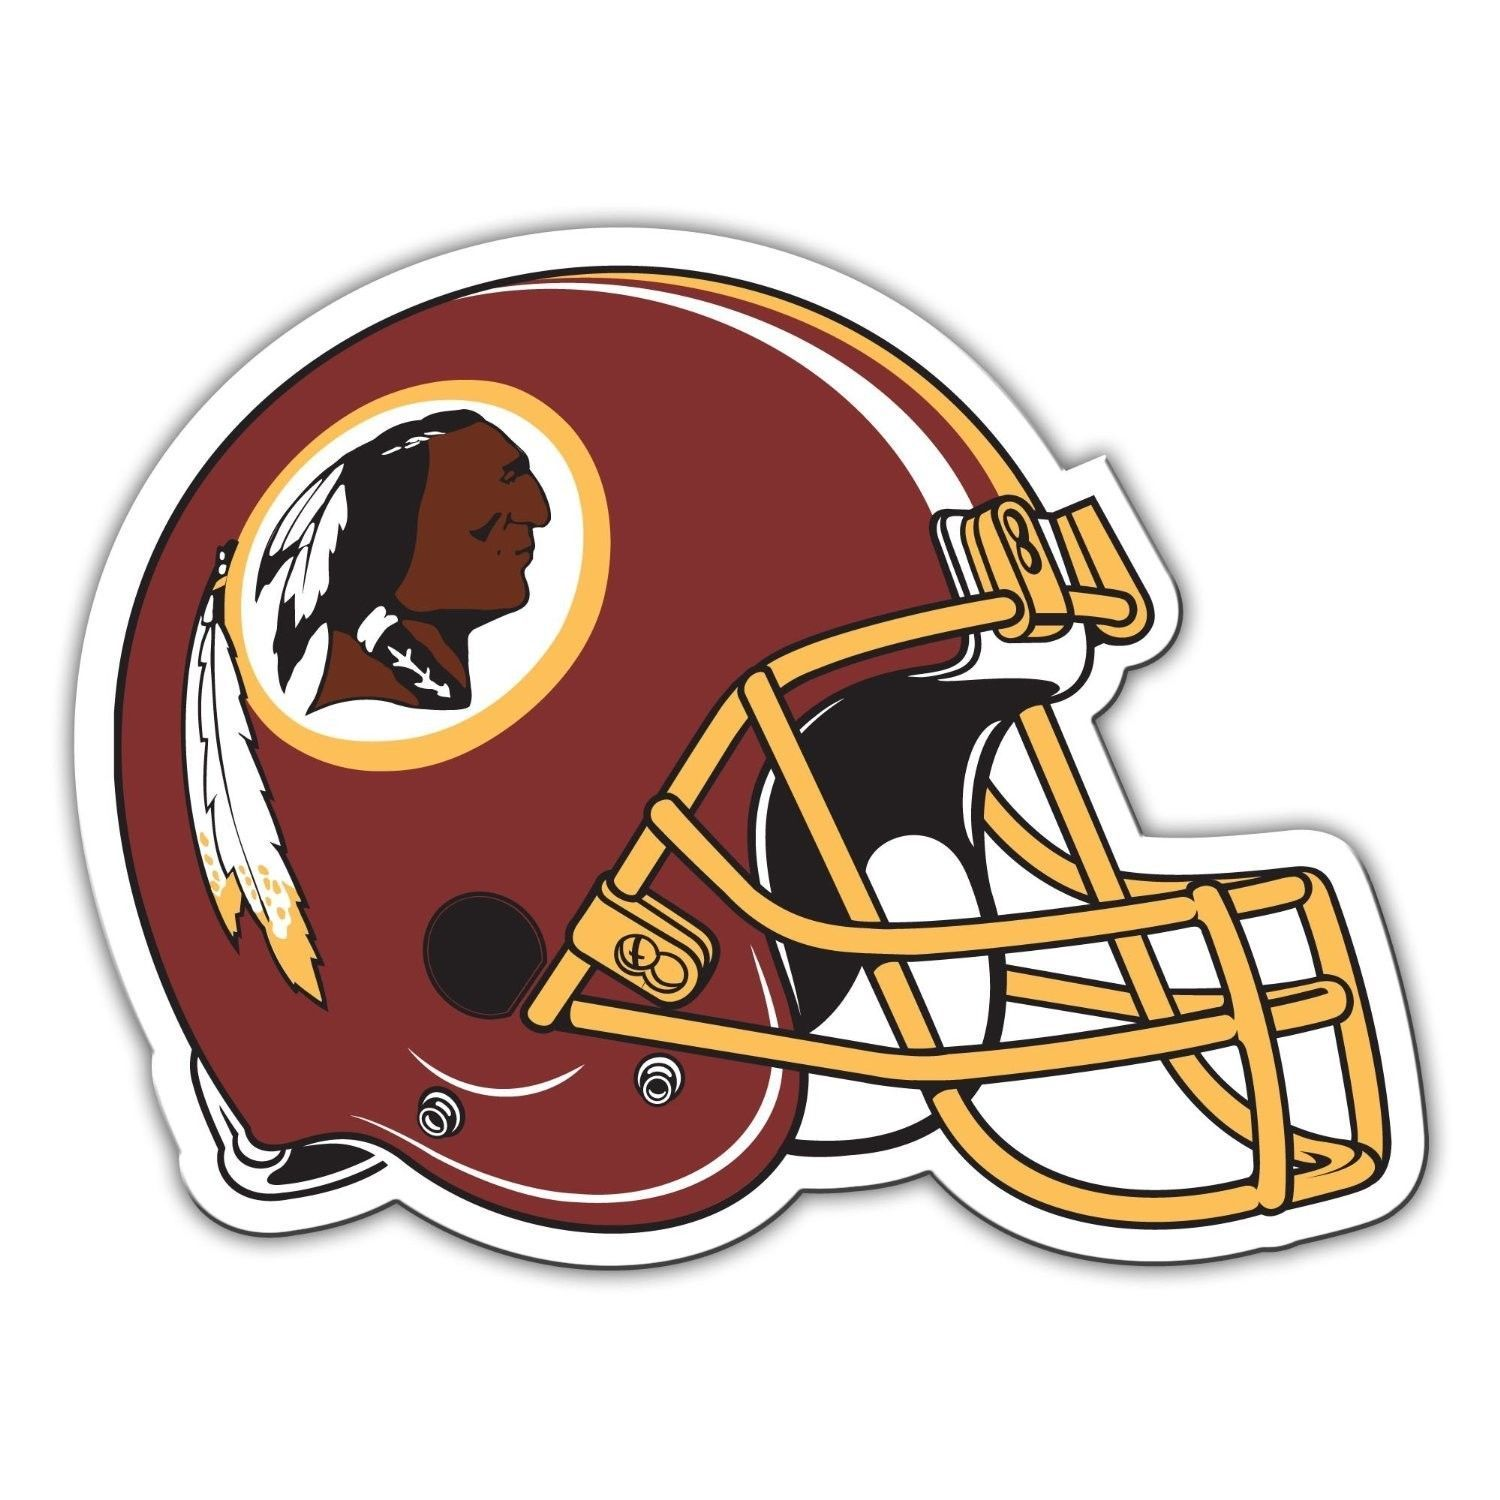 "WASHINGTON REDSKINS BIG 12"" CAR FRIDGE FOOTBALL HELMET MAGNET NFL FOOTBALL #1"